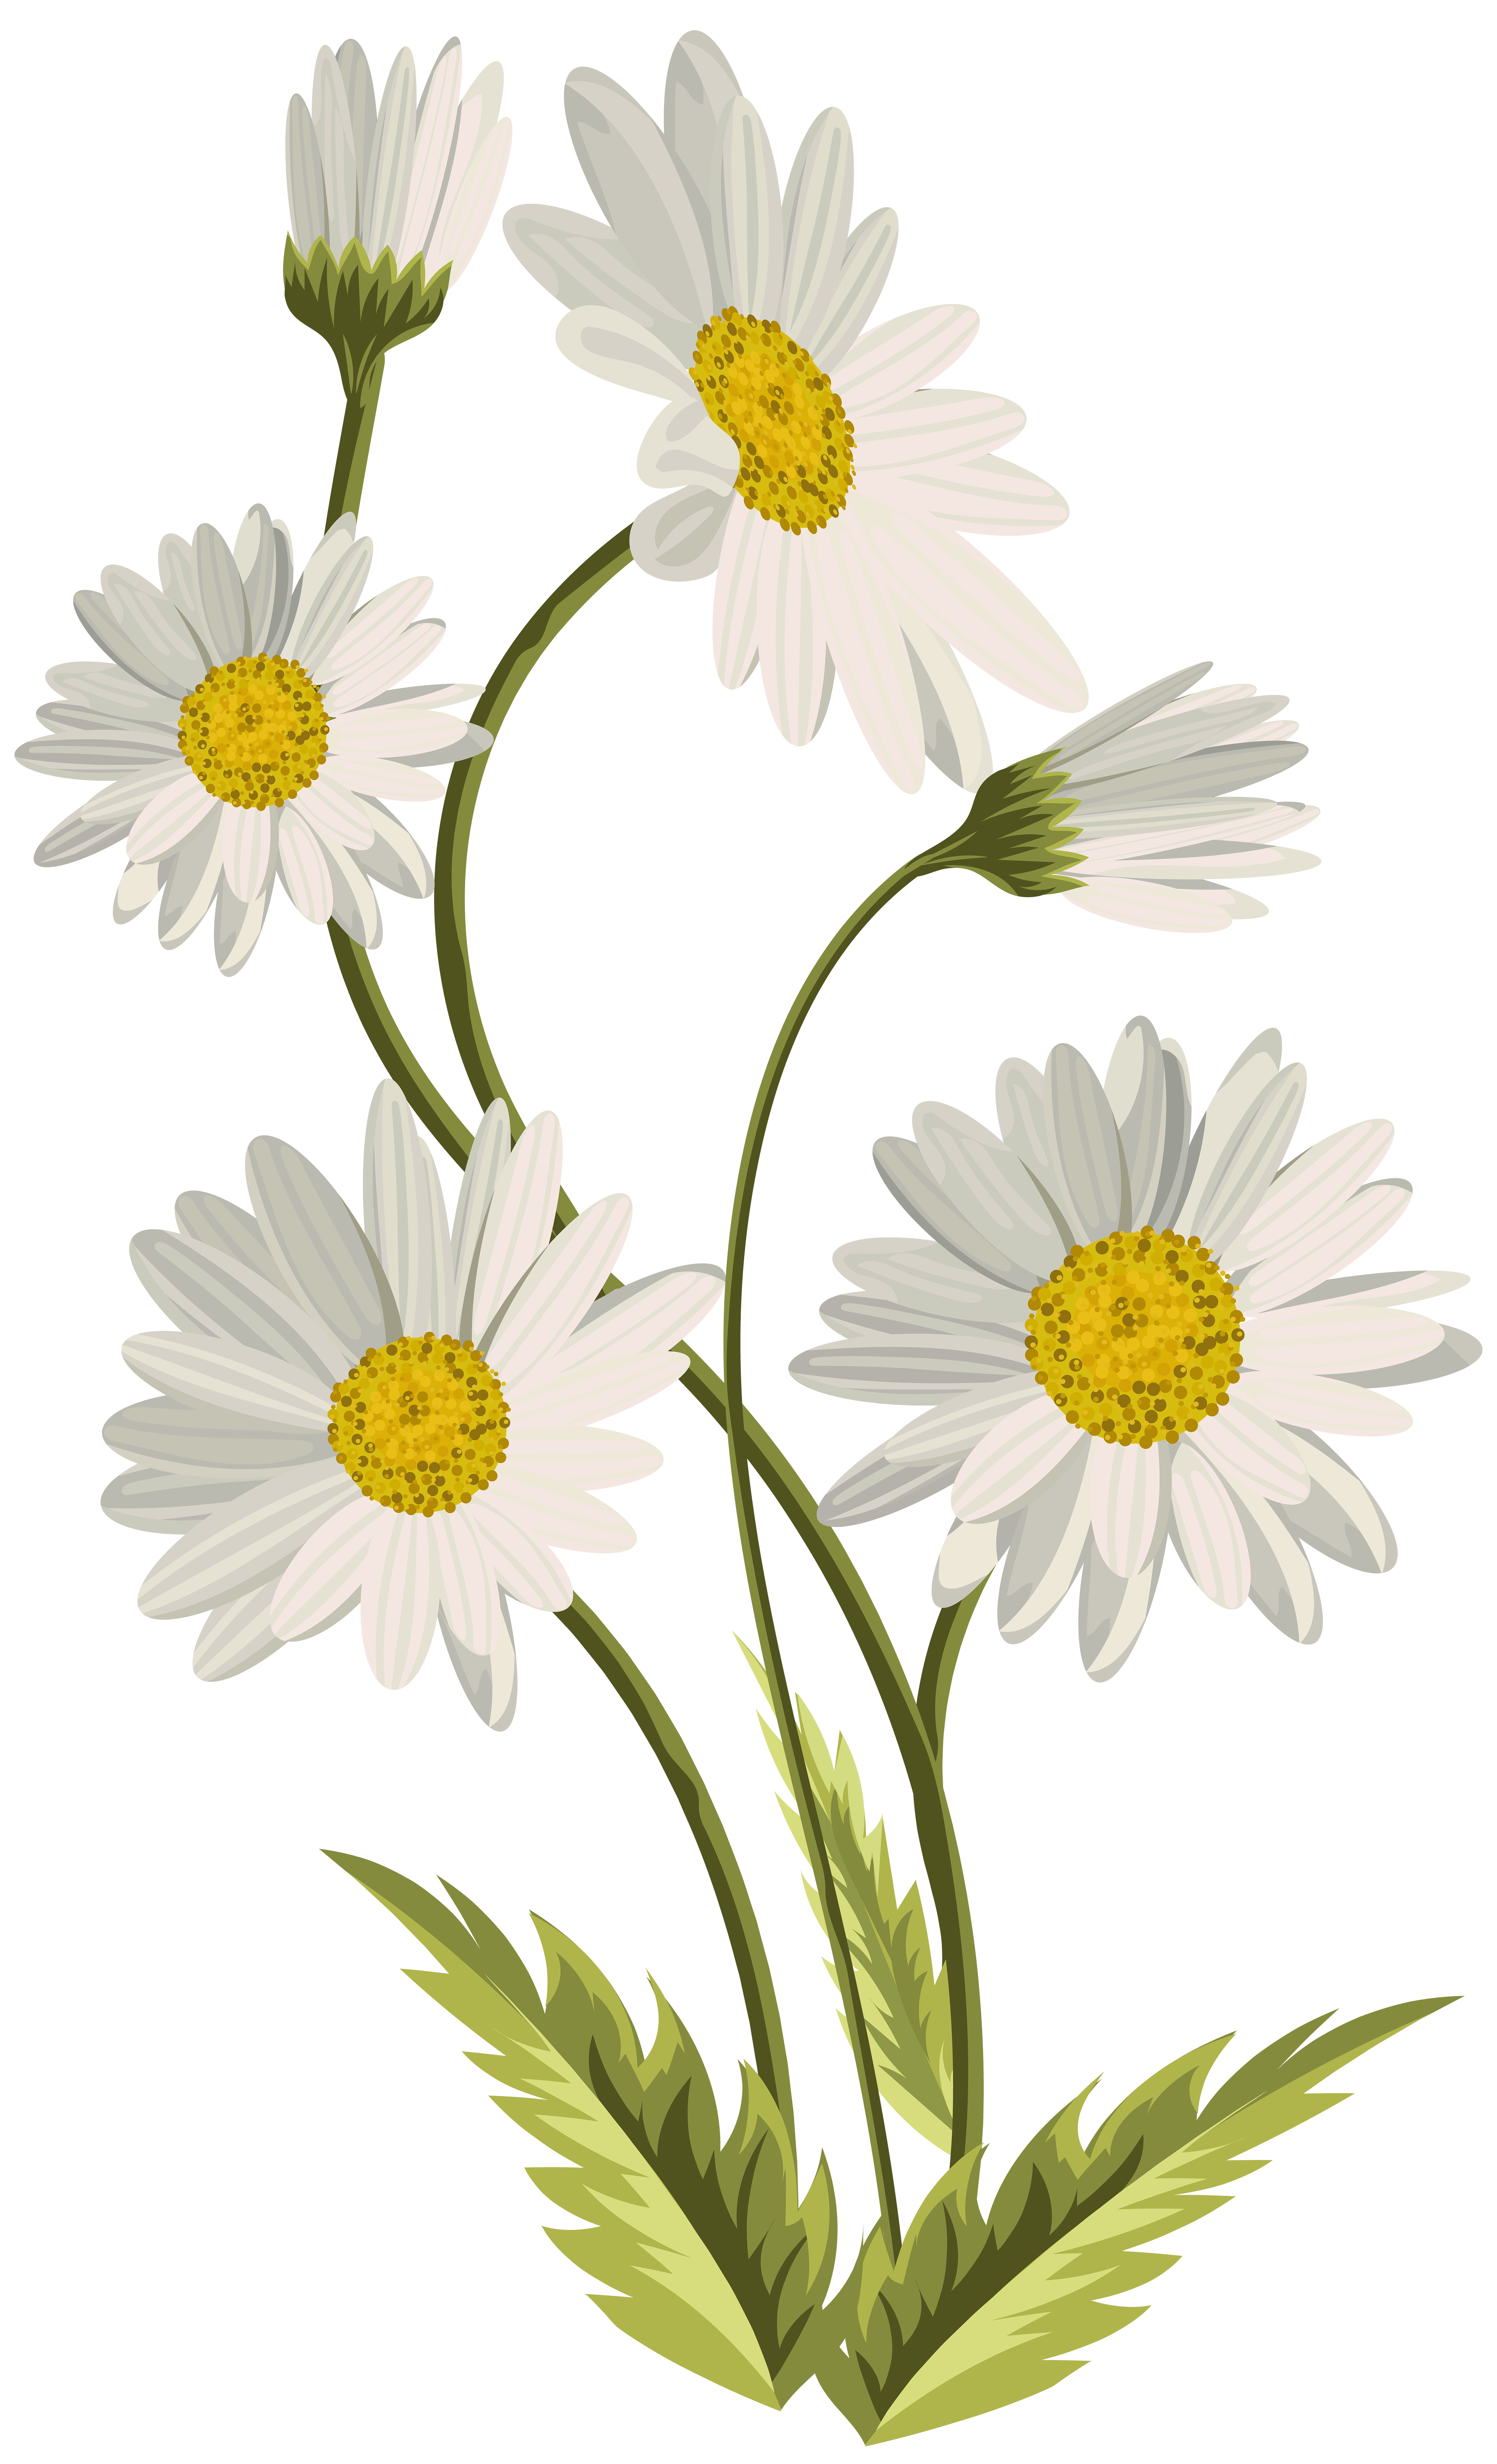 Daisies Transparent Png Clip Art Image Gallery Yopriceville High Quality Images And Transparent Png Free Clipart Daisy Painting Daisy Art Flower Drawing